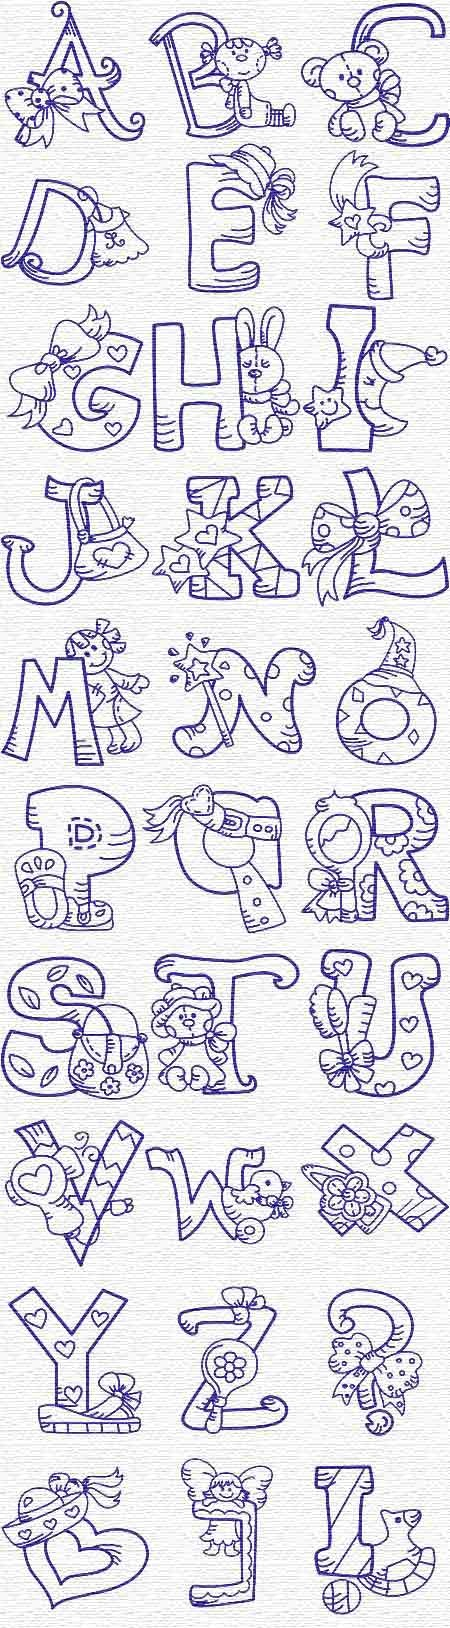 Free Embroidery Designs, Sweet Embroidery, Designs | Textos ...